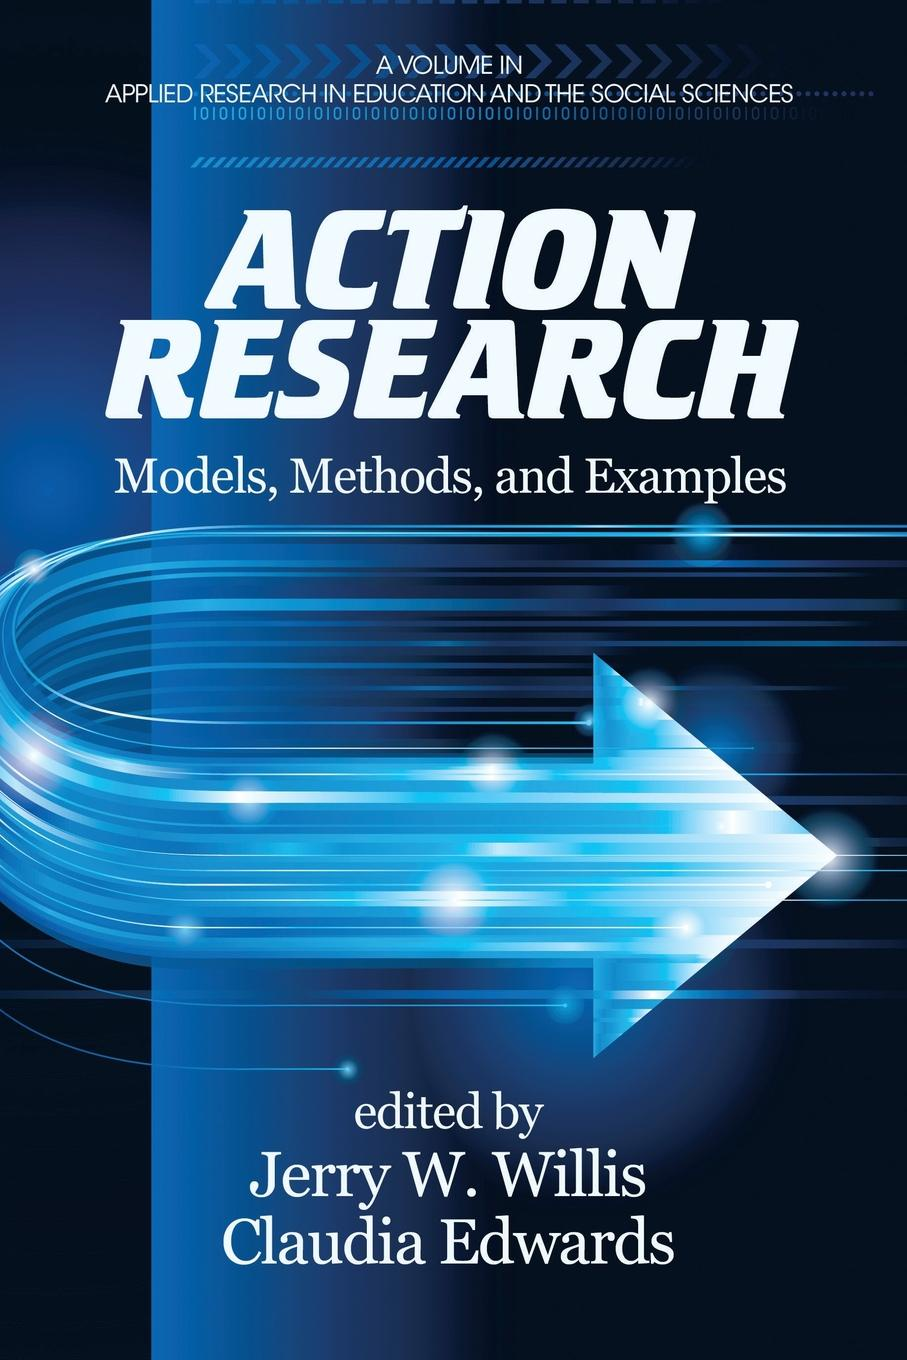 Action Research. Models, Methods, and Examples motivation and action